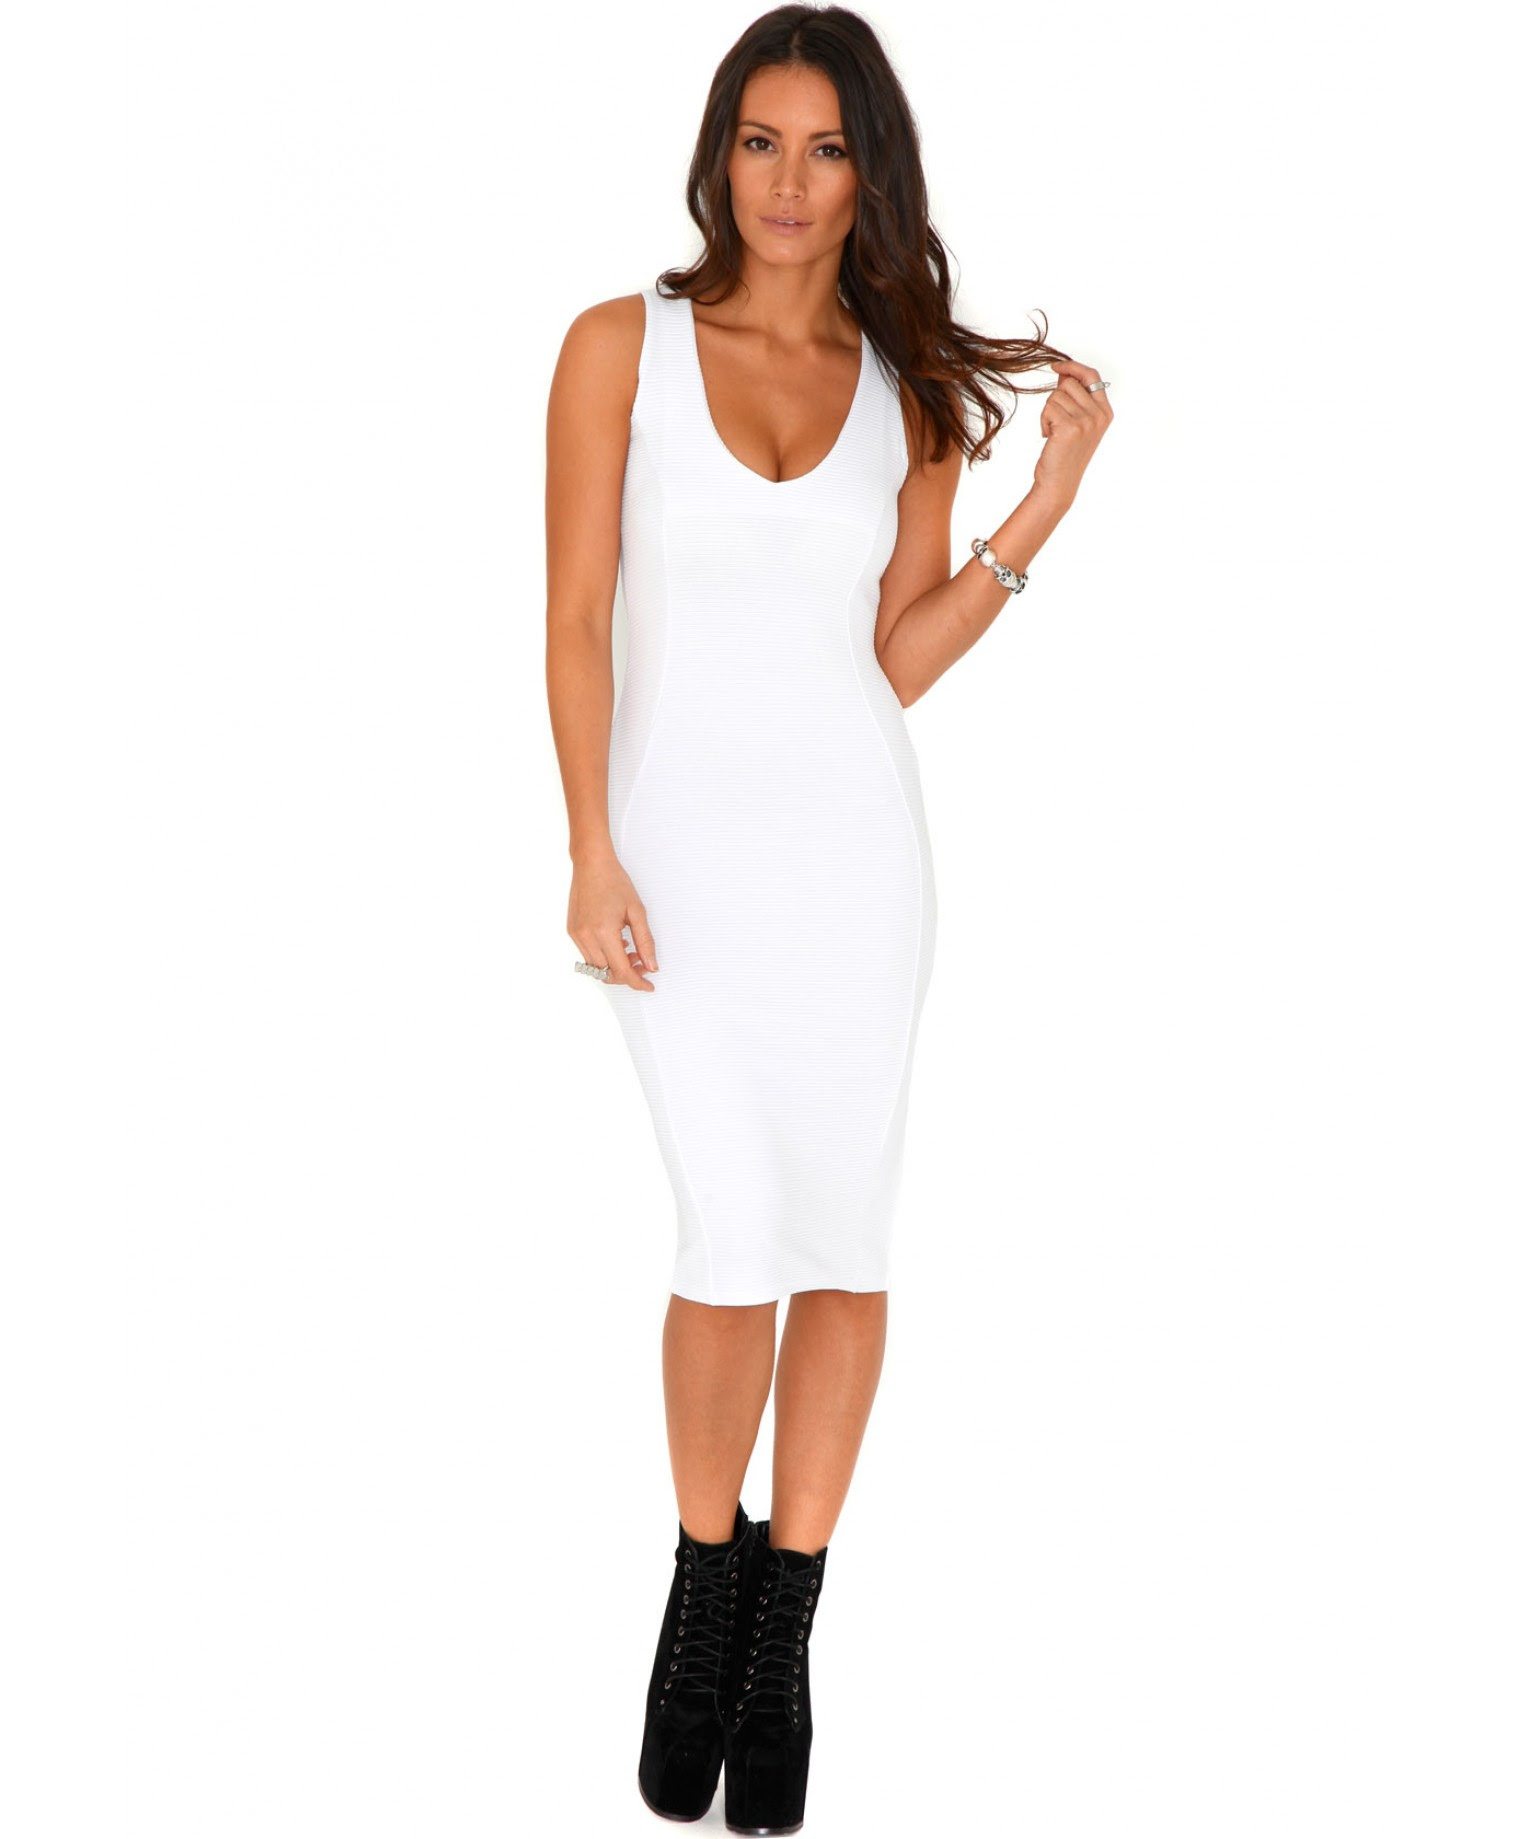 Hoboken different types body on review bodycon dress wedding